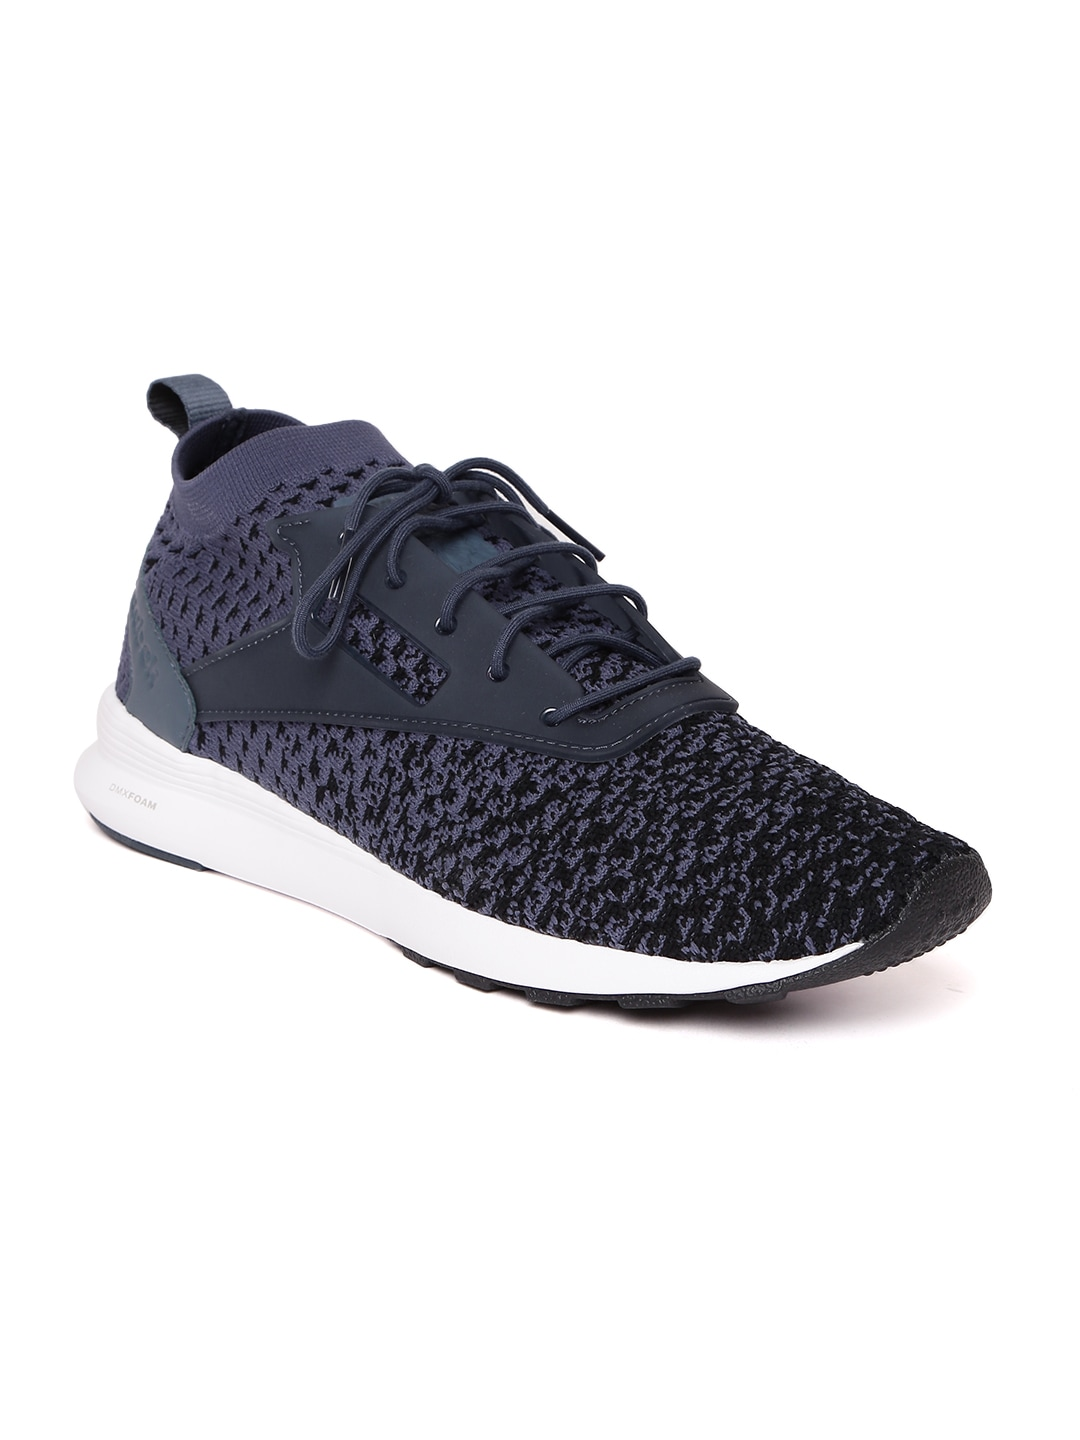 9f1864900a8a Reebok Classic Navy Blue Blue Casual Shoes - Buy Reebok Classic Navy Blue  Blue Casual Shoes online in India